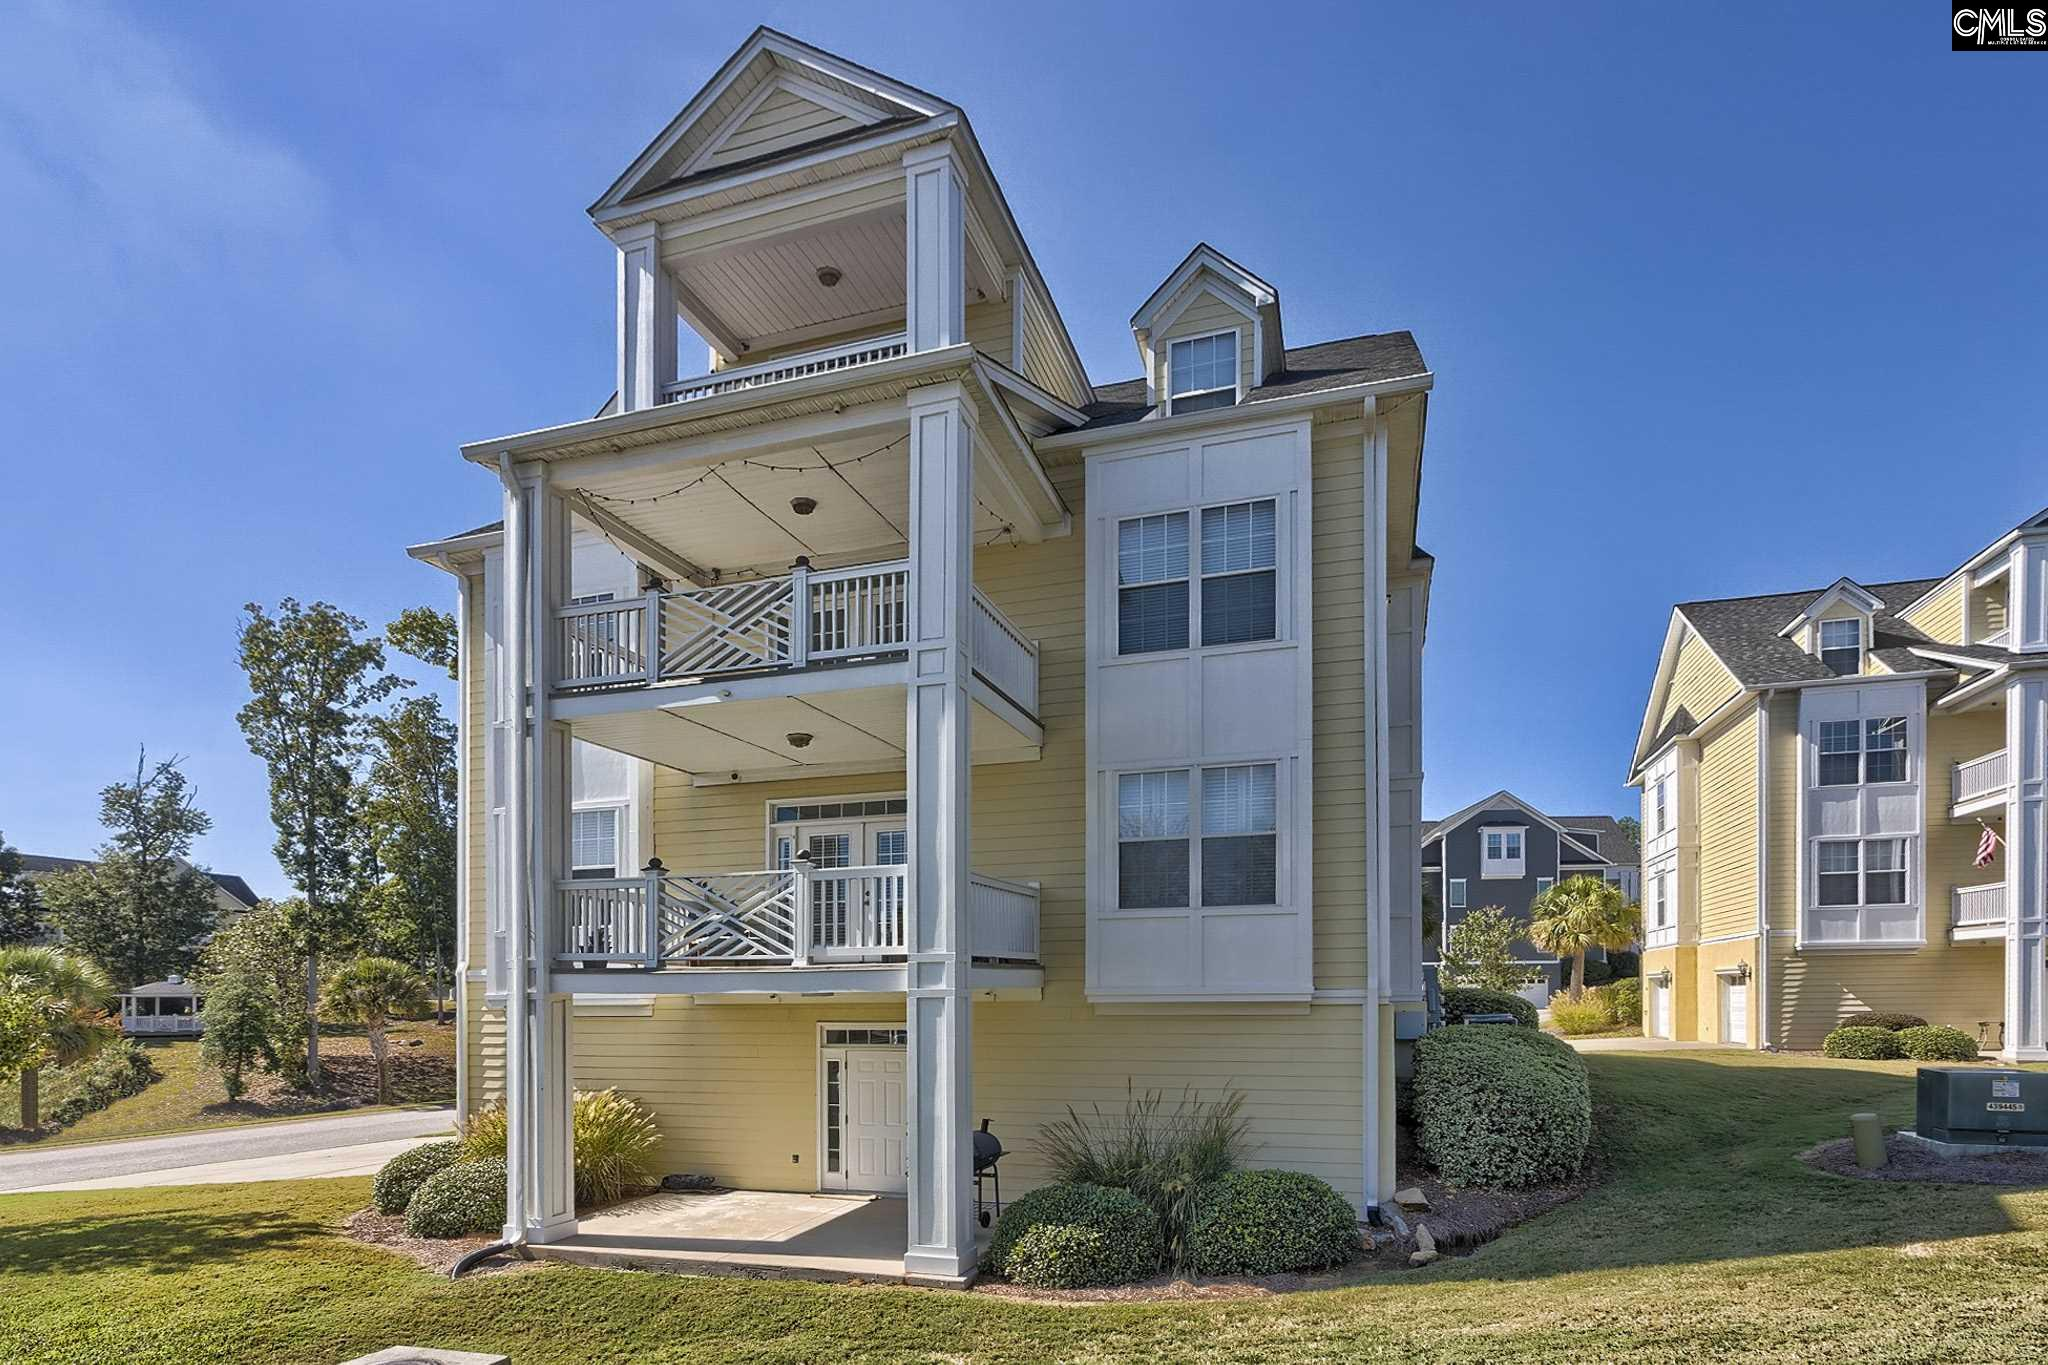 127 Waterway Lexington, SC 29072